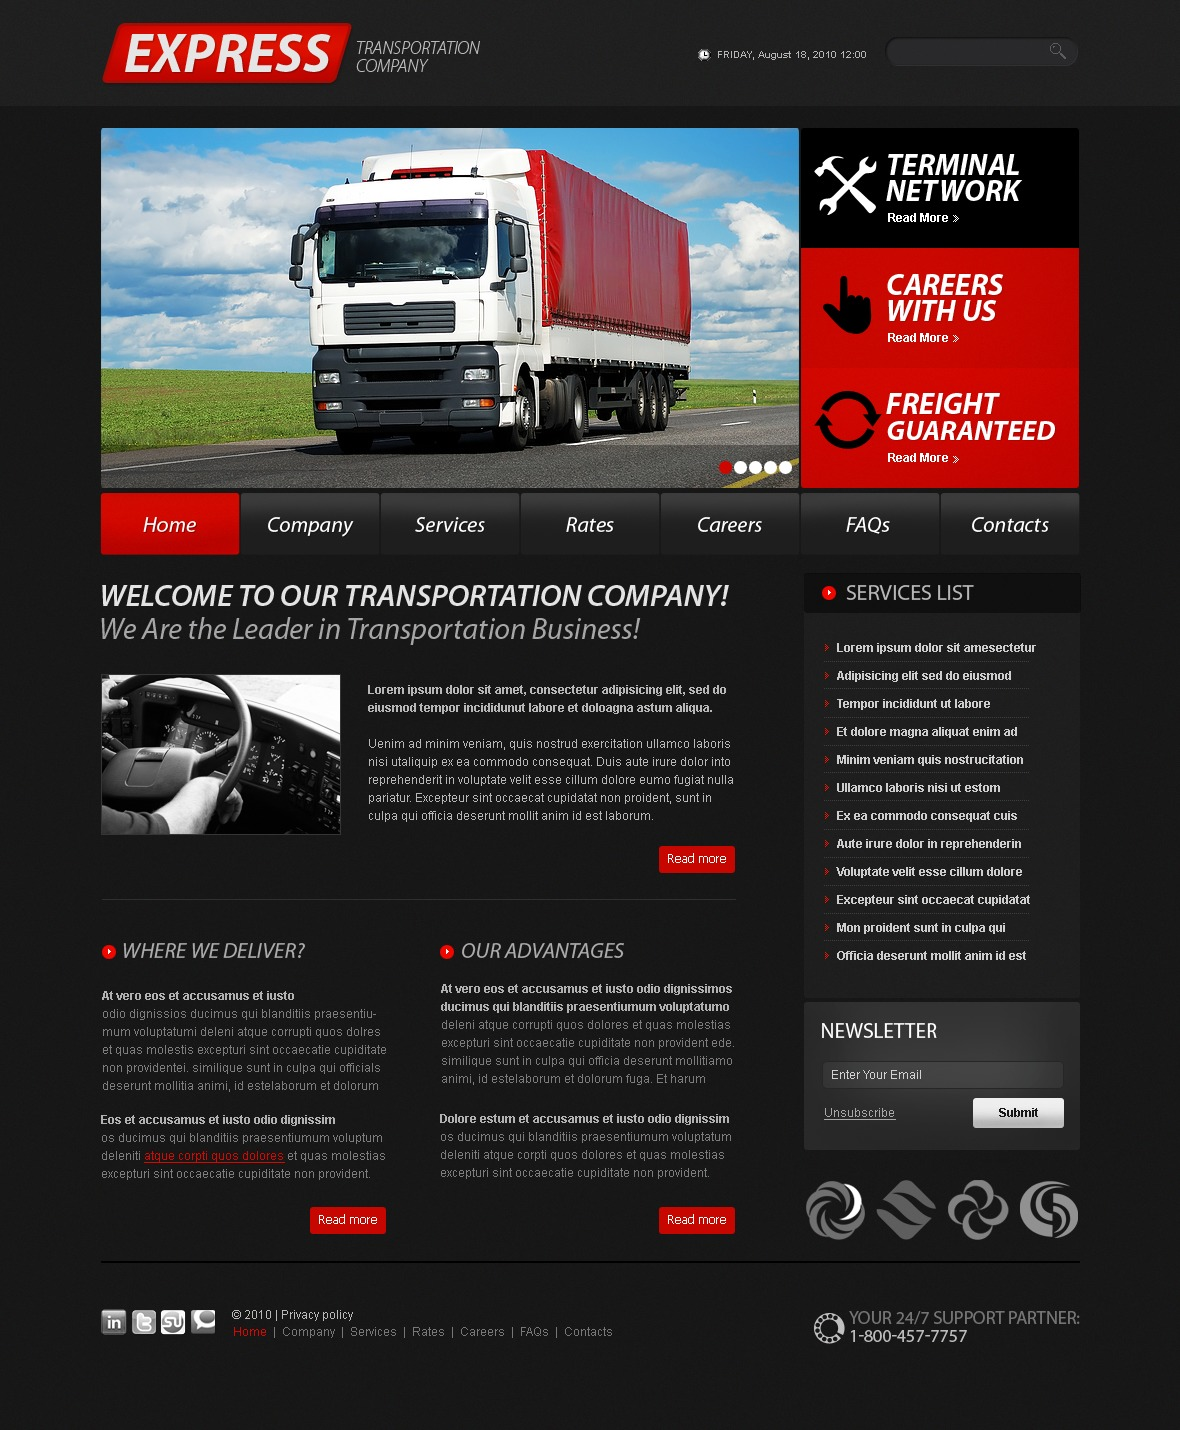 The Express Transportation Company PSD Design 54273, one of the best PSD templates of its kind (transportation, flash 8, wide), also known as express transportation company PSD template, transport PSD template, fast PSD template, reliability PSD template, safety PSD template, express PSD template, exportation PSD template, trucking PSD template, work PSD template, team PSD template, profile PSD template, support PSD template, customer PSD template, clients solutions PSD template, cars PSD template, cargo PSD template, services PSD template, shipment PSD template, rates PSD template, prices PSD template, offer PSD template, standards PSD template, vehicle PSD template, destination PSD template, trucking PSD template, sea PSD template, air PSD template, help and related with express transportation company, transport, fast, reliability, safety, express, exportation, trucking, work, team, profile, support, customer, clients solutions, cars, cargo, services, shipment, rates, prices, offer, standards, vehicle, destination, trucking, sea, air, help, etc.